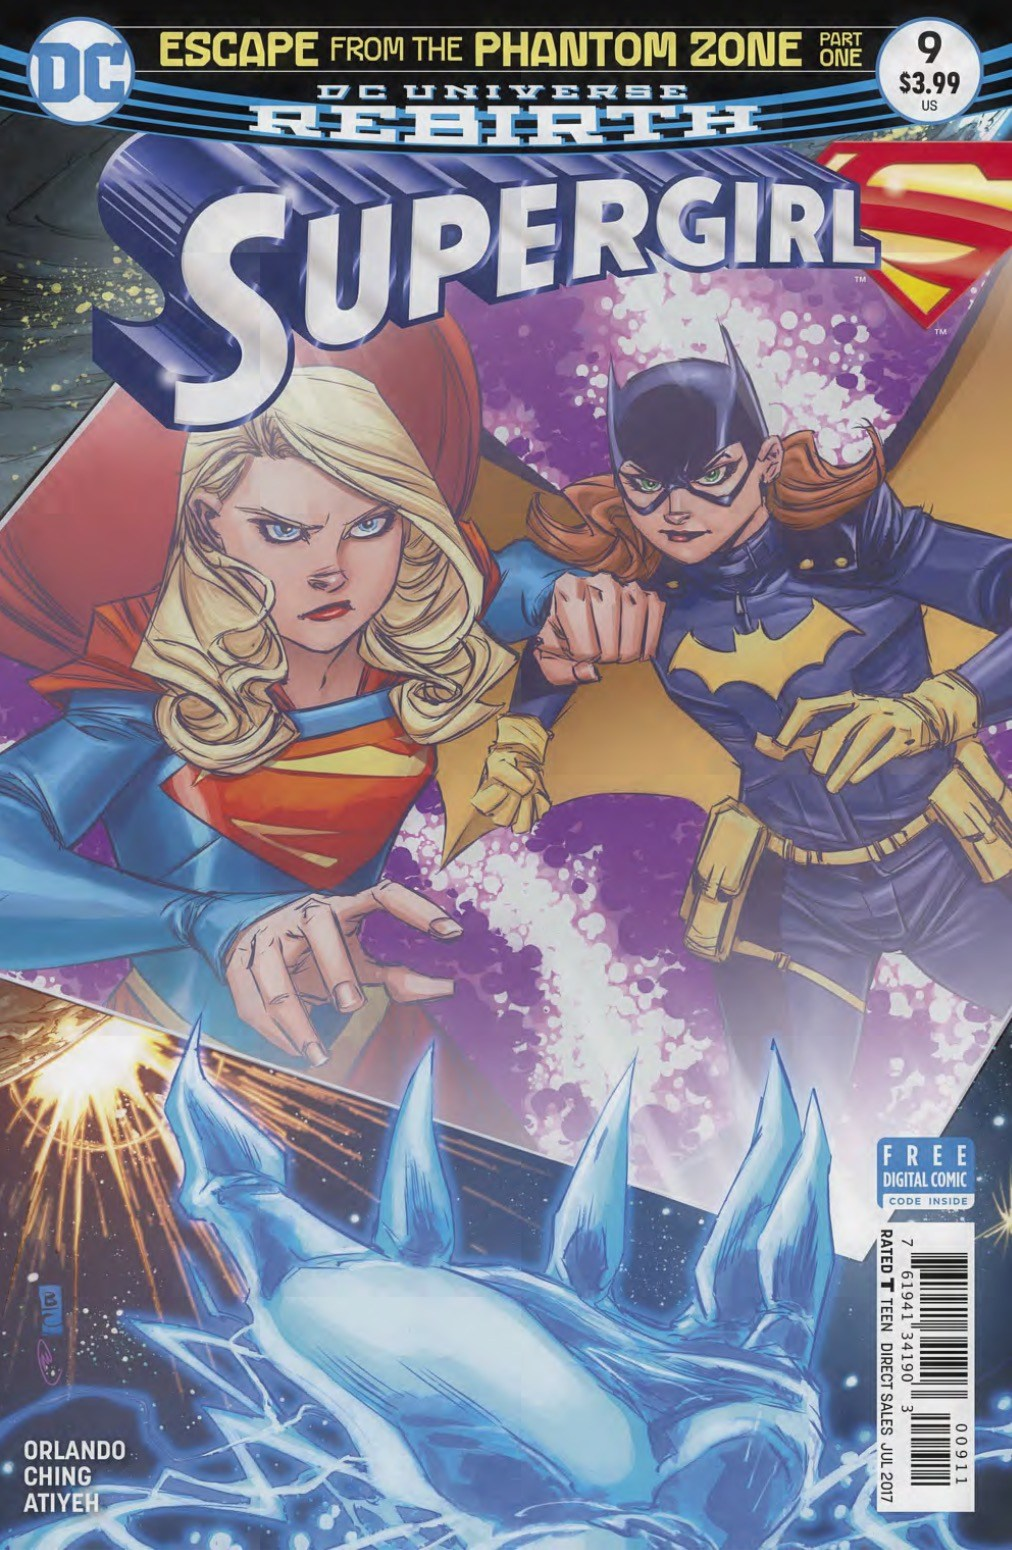 Supergirl #9 Review